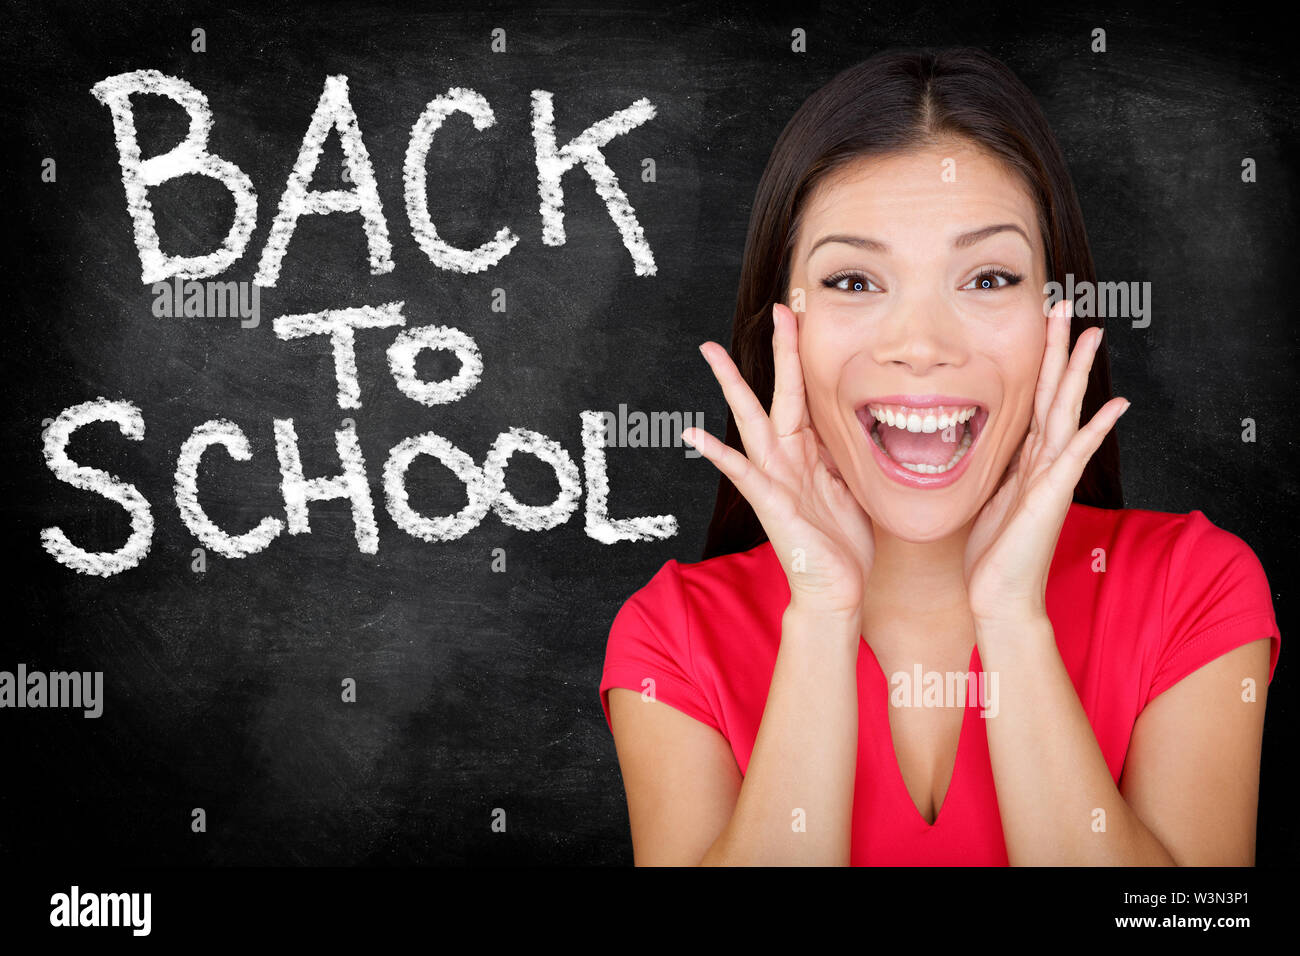 Back to School - university college student teacher screaming excited by blackboard with BACK TO SCHOOL written on chalkboard. Female student or funny woman teacher. - Stock Image